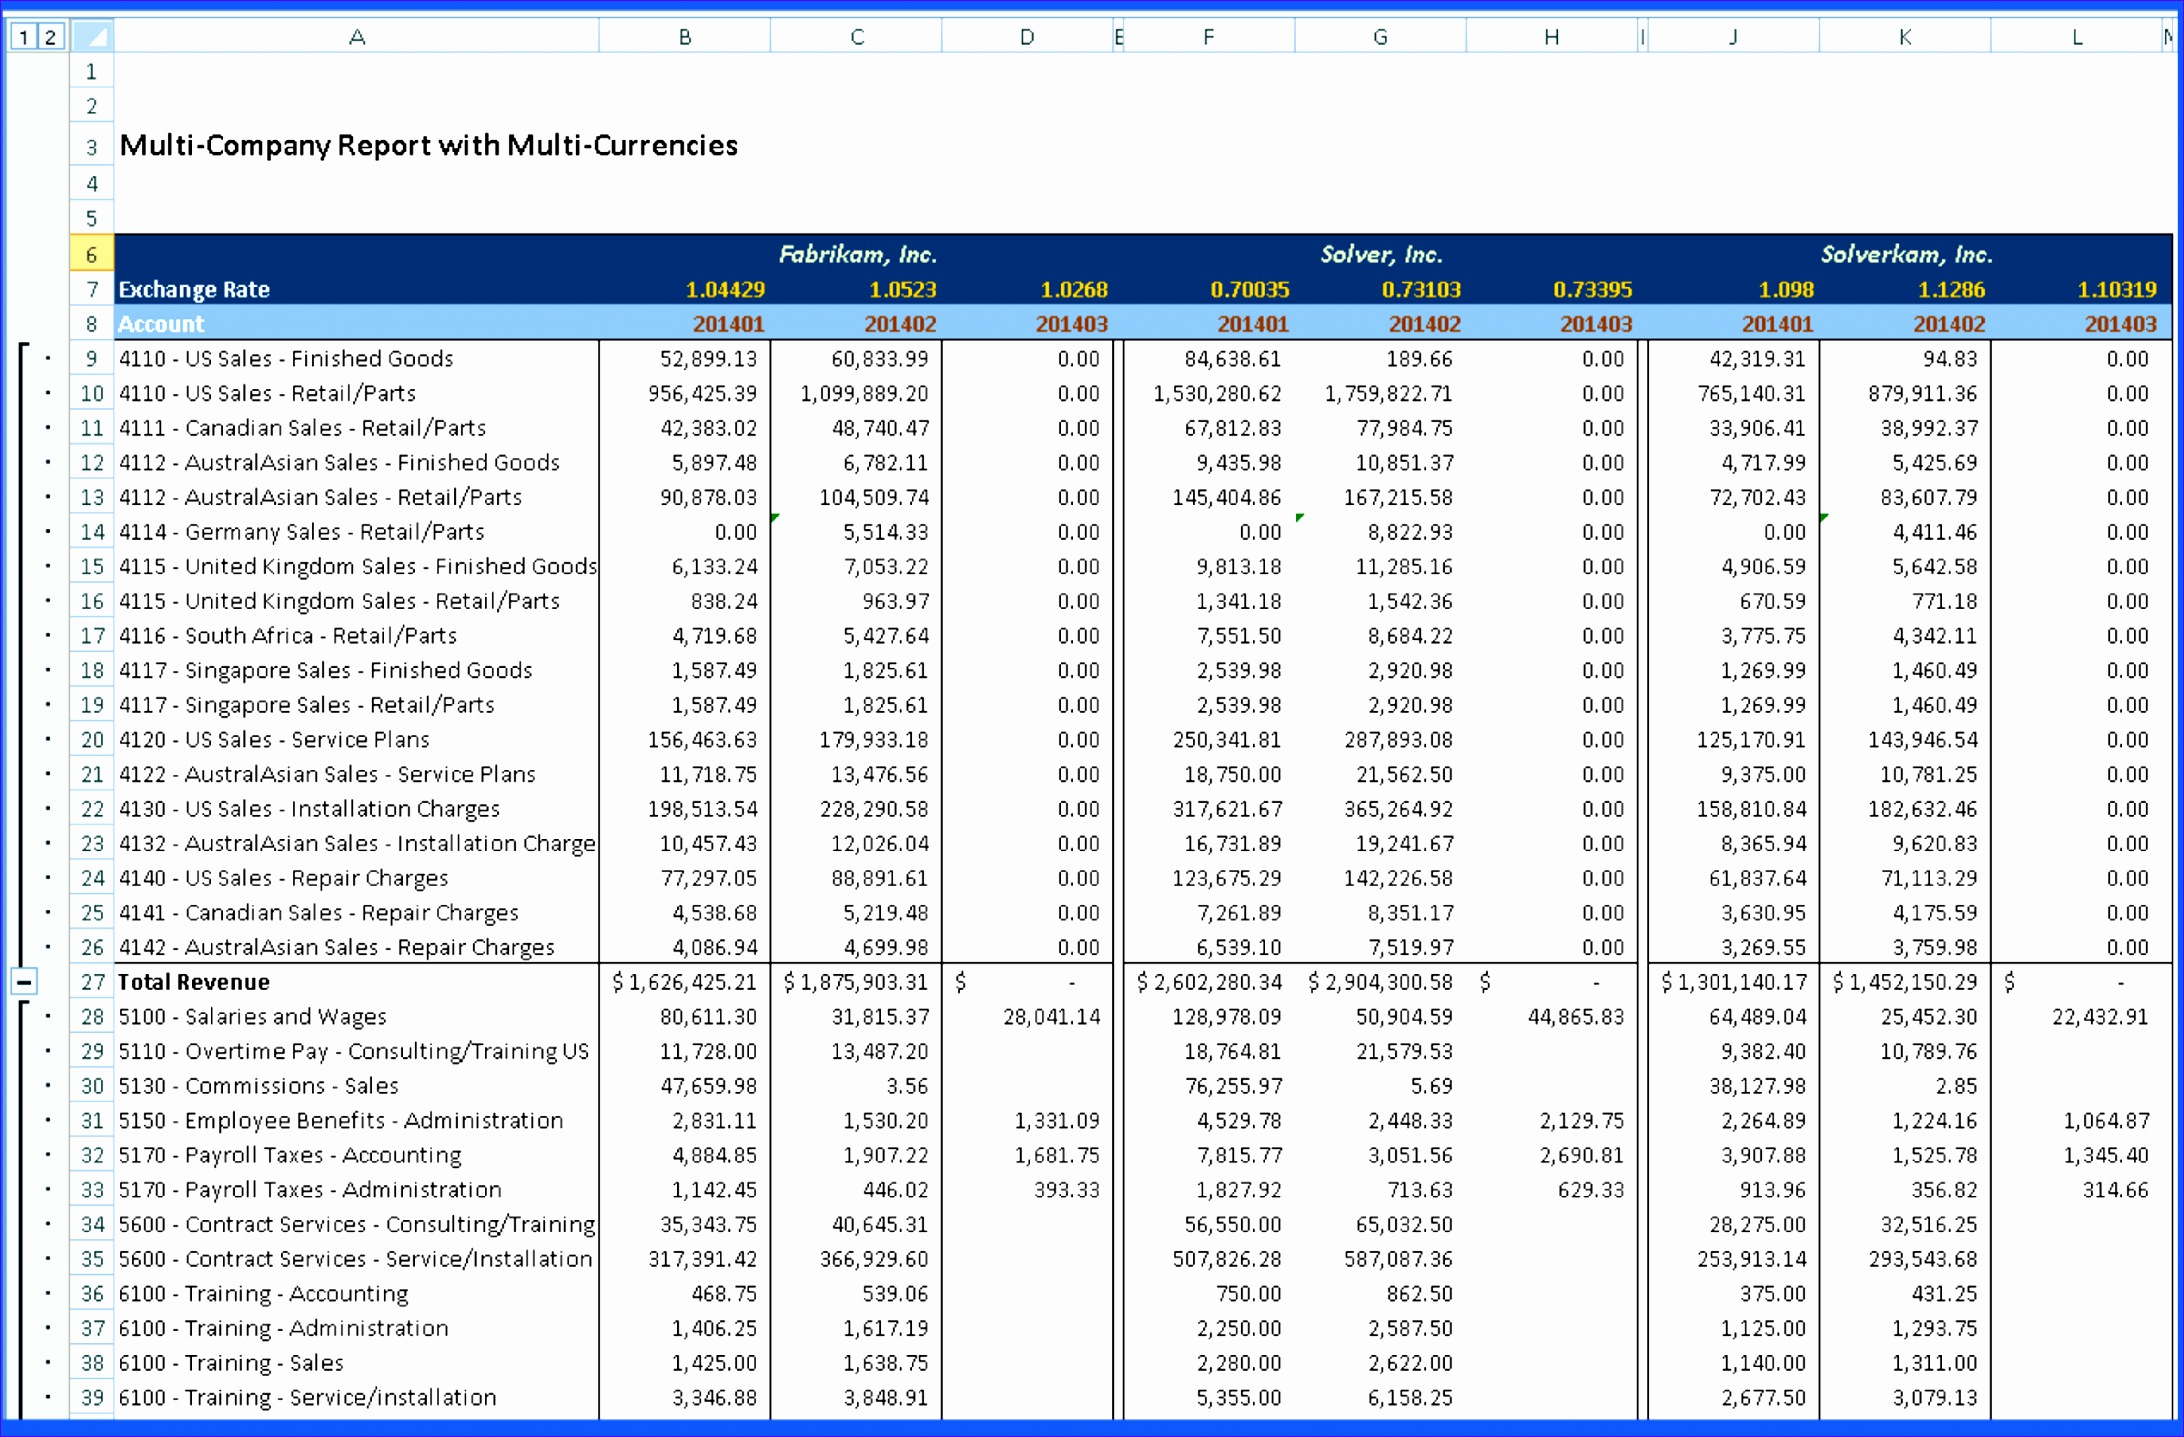 Cash Flow Analysis Template Excel Vkwbd Lovely solutionfilehx Id=